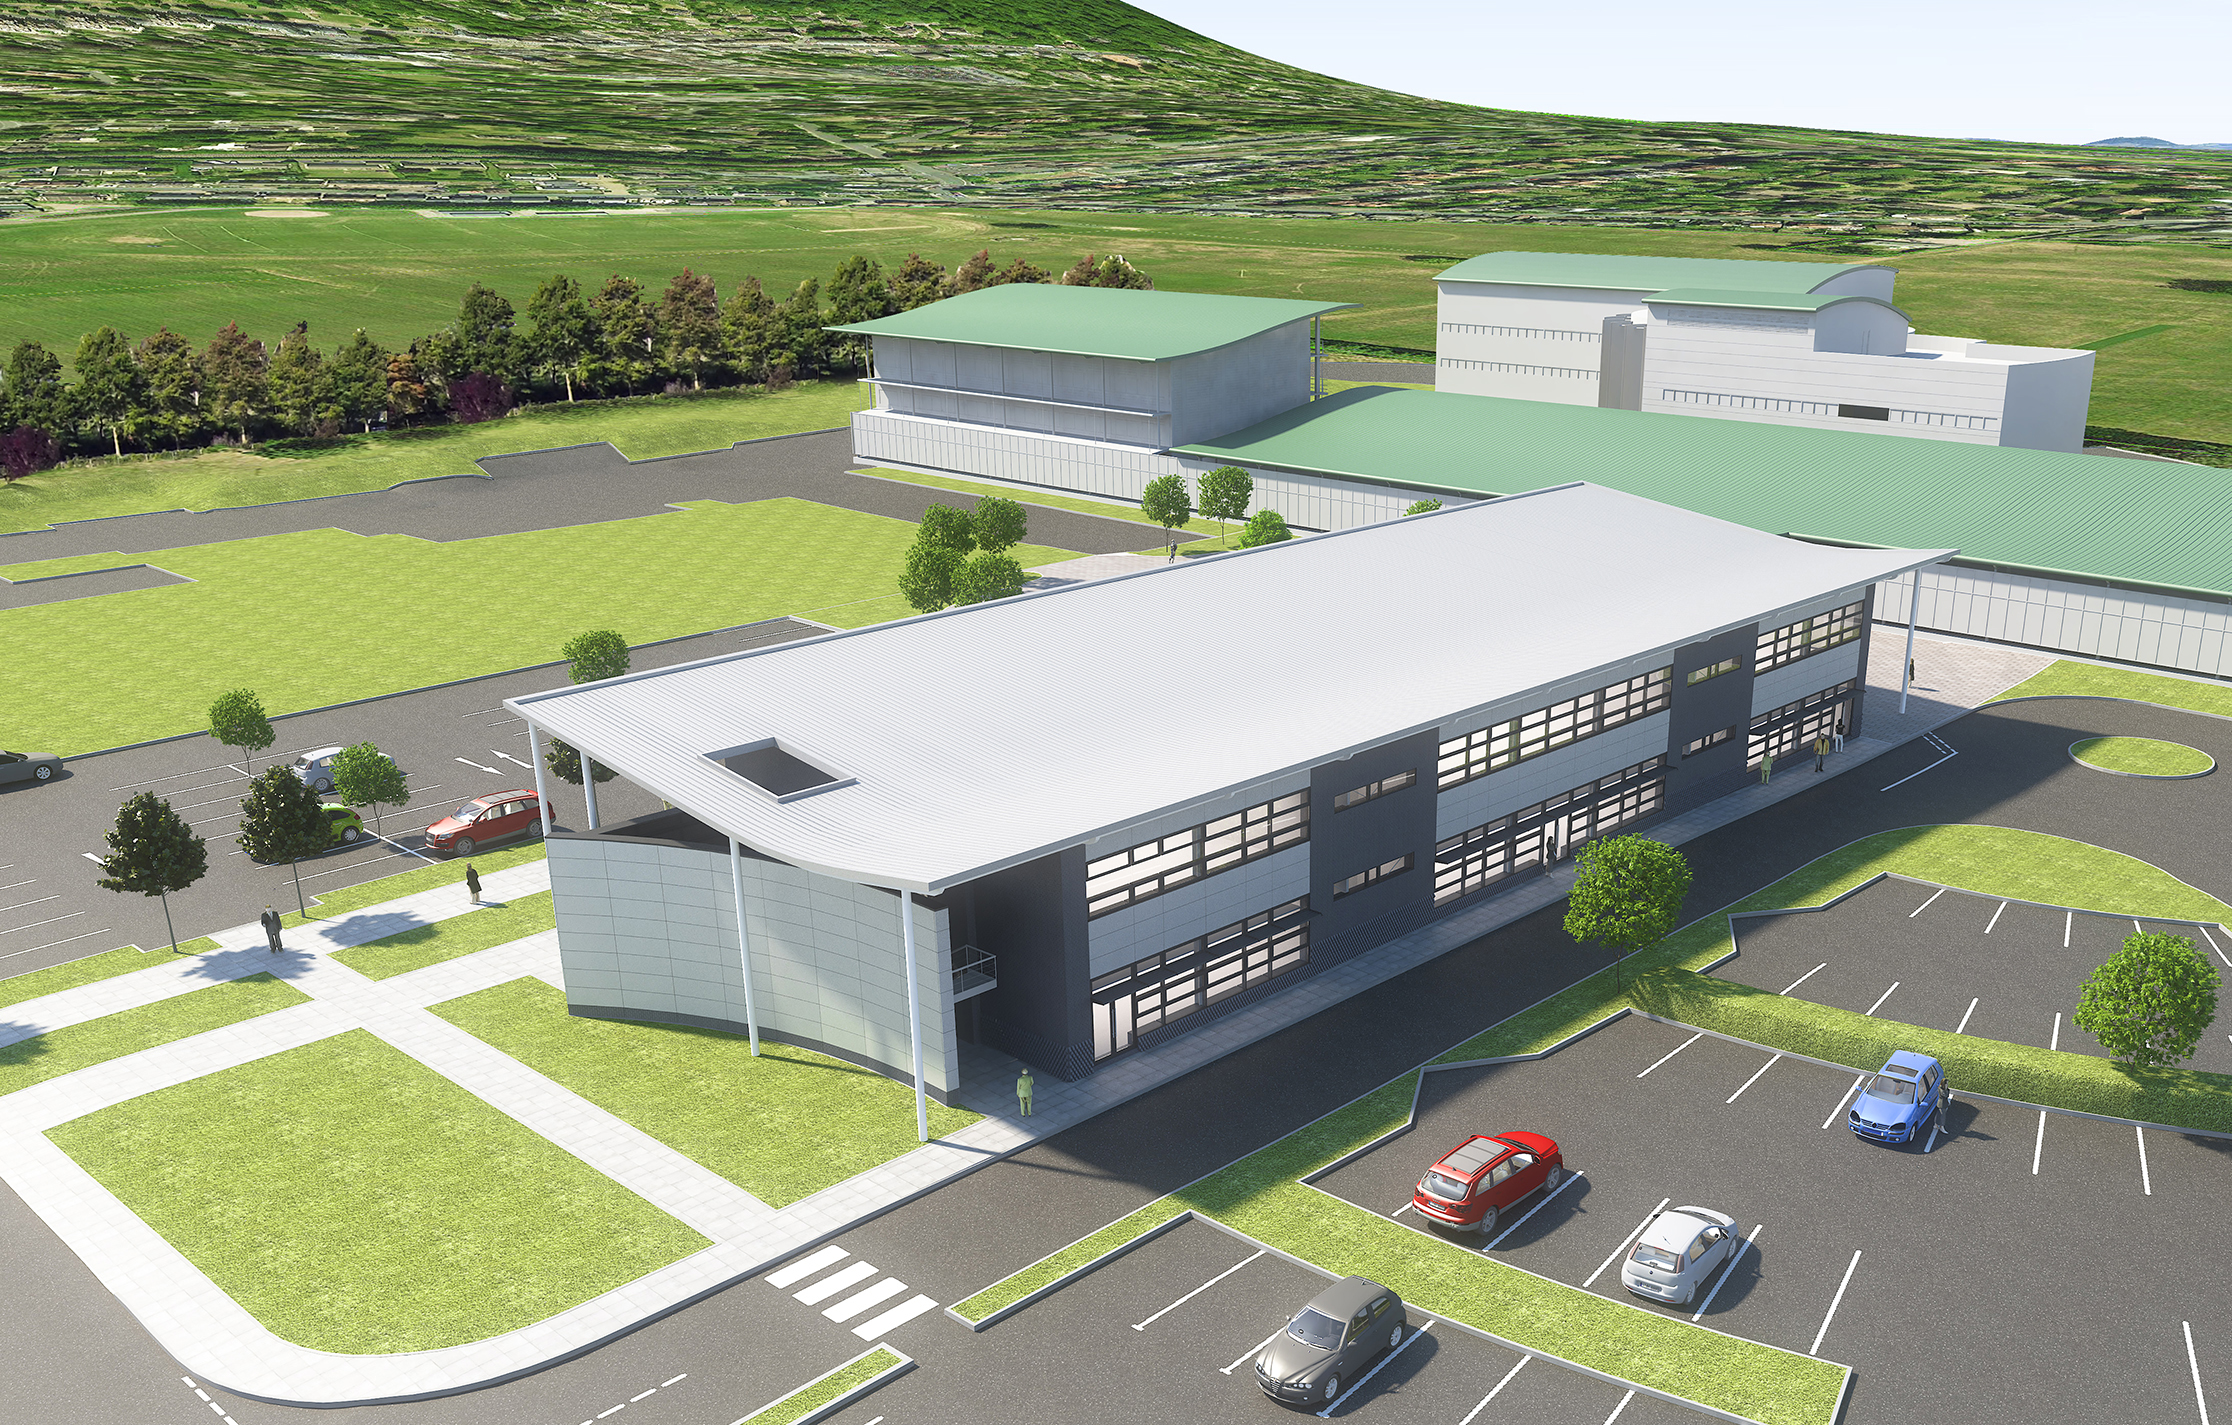 Artists impression phase 5 of Malvern Hills Science Park